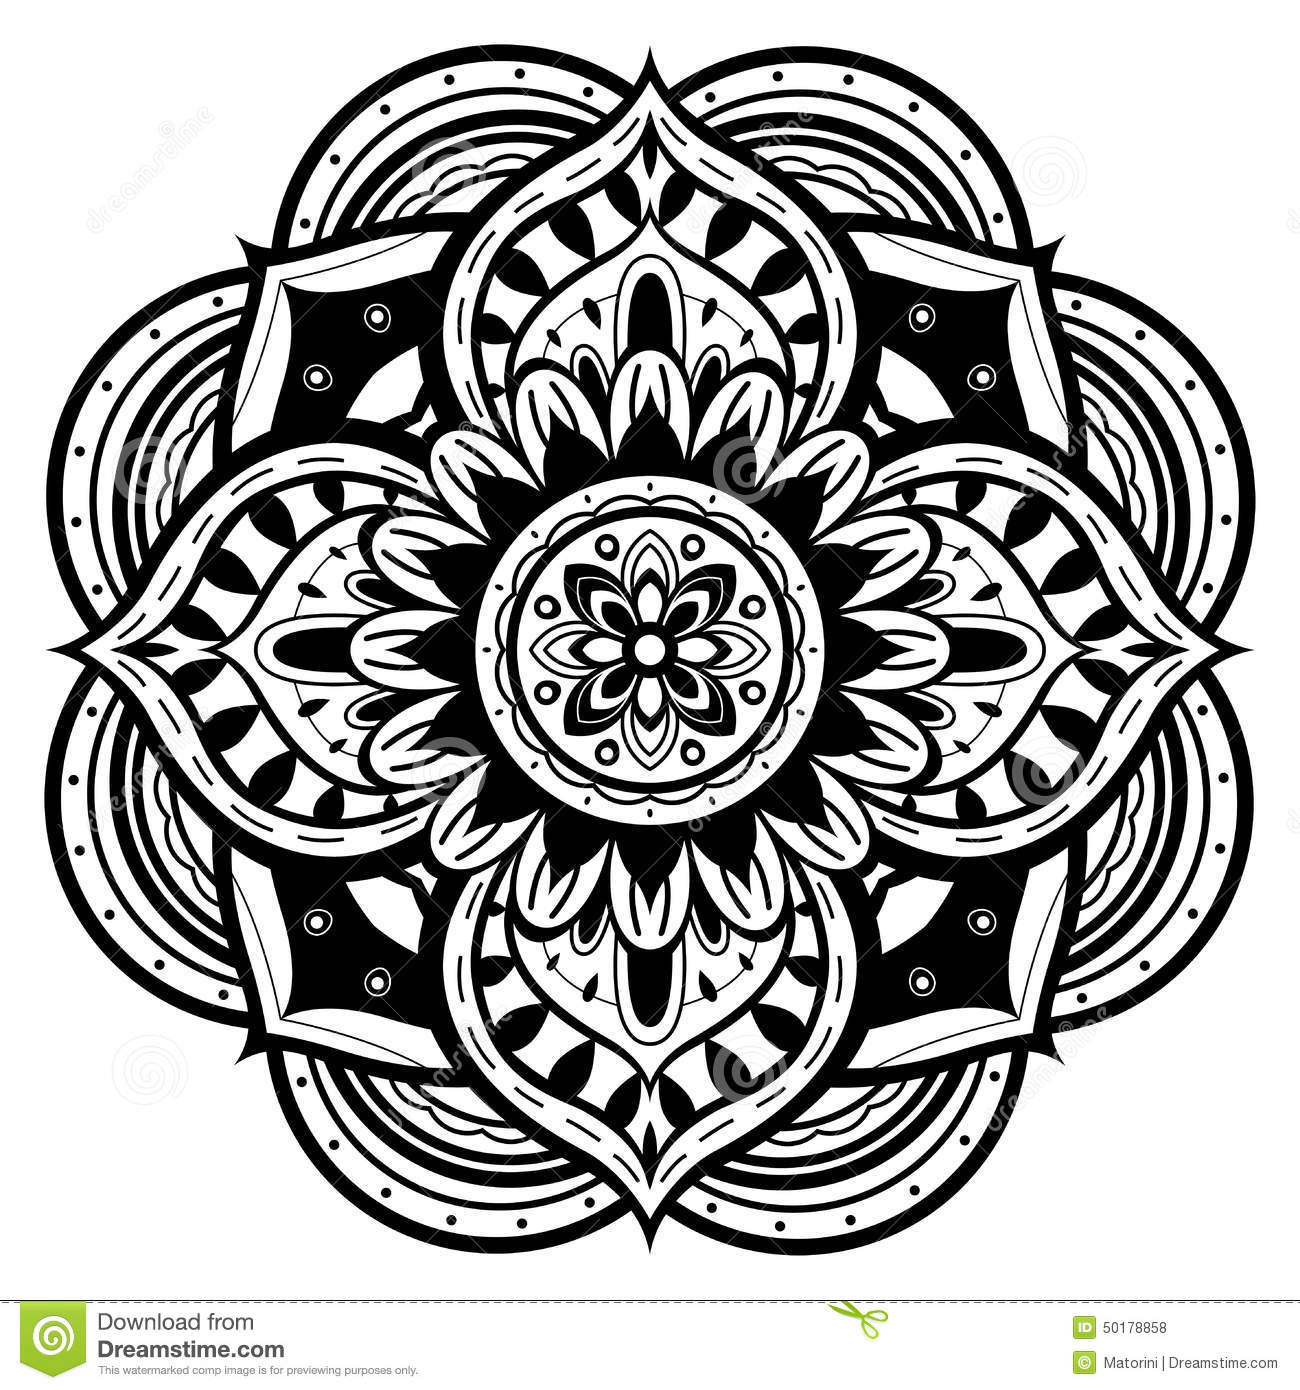 black background coloring pages - black and white mandala stock vector illustration of lace